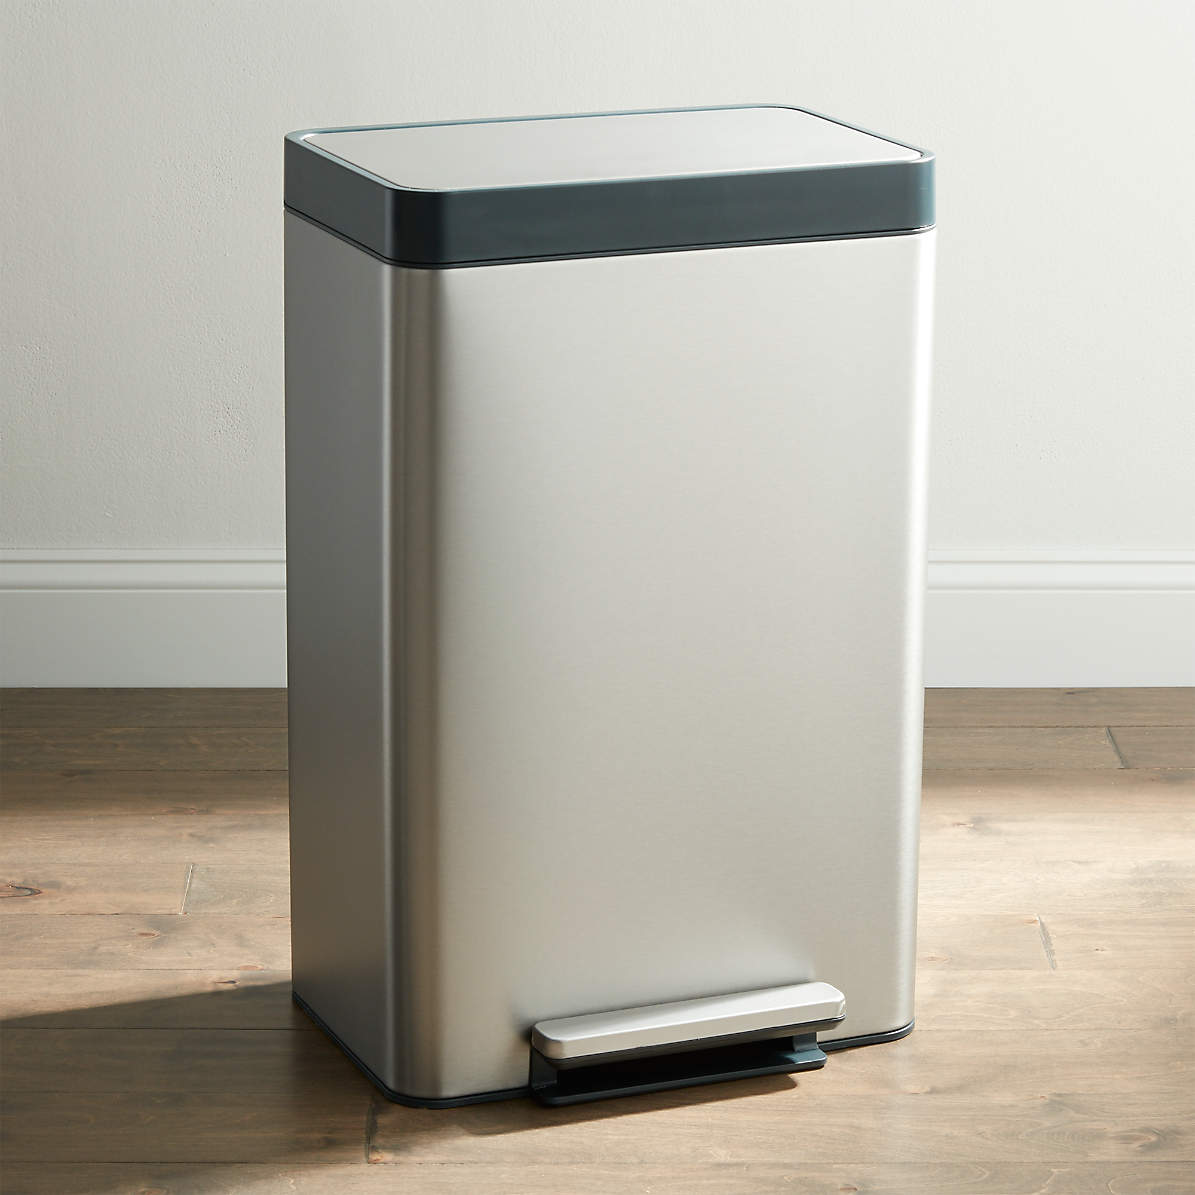 Kohler Stainless Steel 13 Gallon Step Trash Can Reviews Crate And Barrel Canada